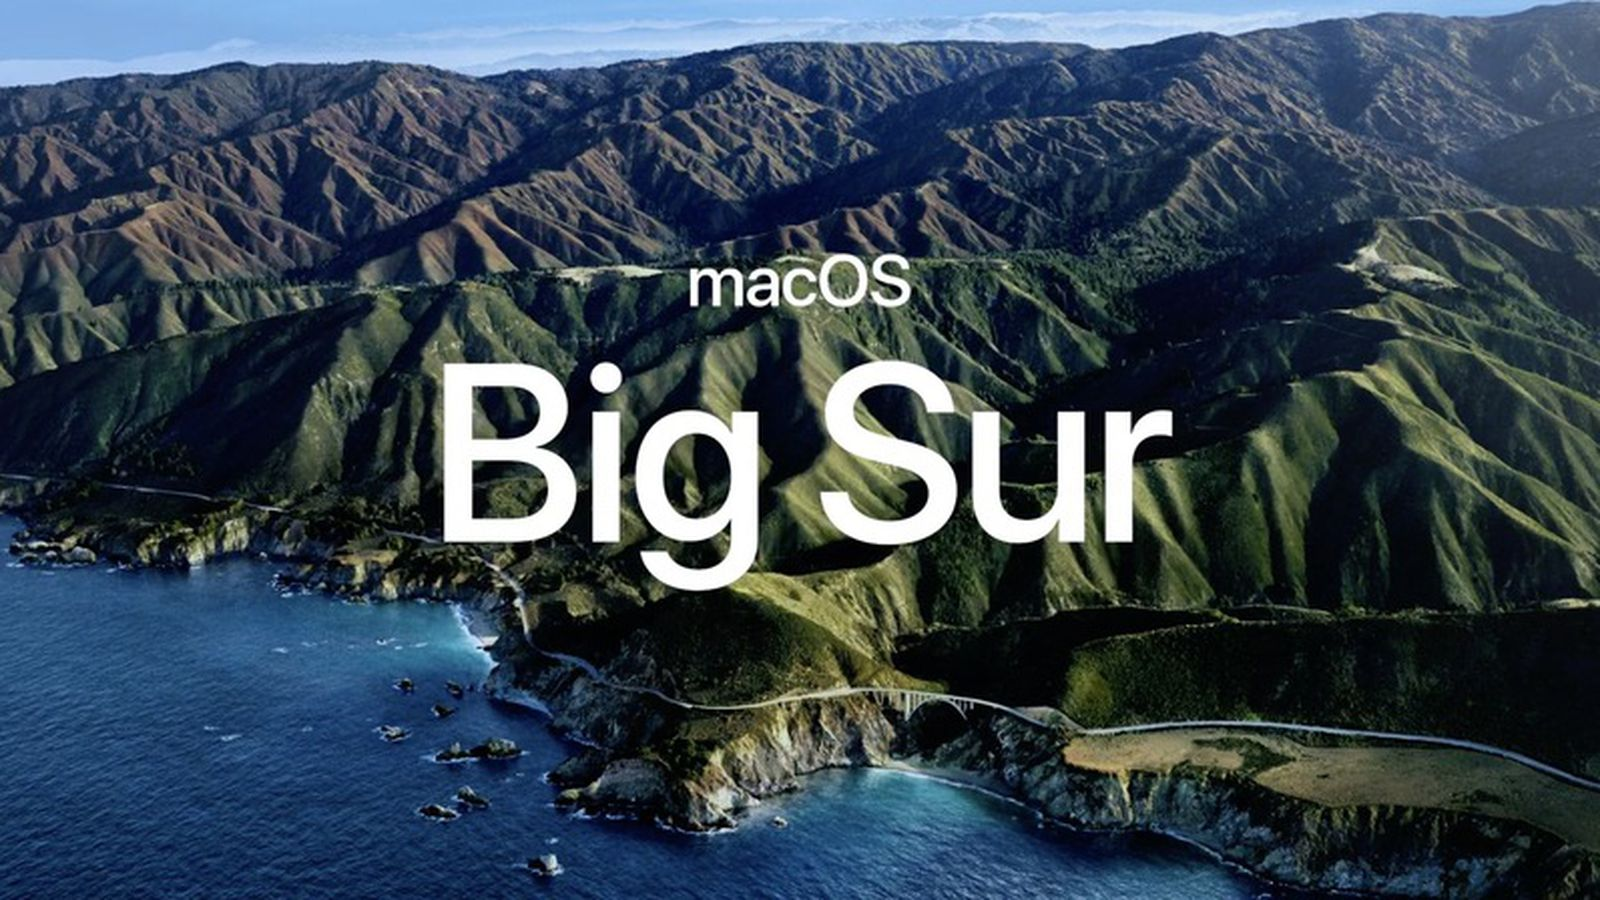 Where can you download macOS Big Sur 11 Developer Beta DMG and ISO Image for free